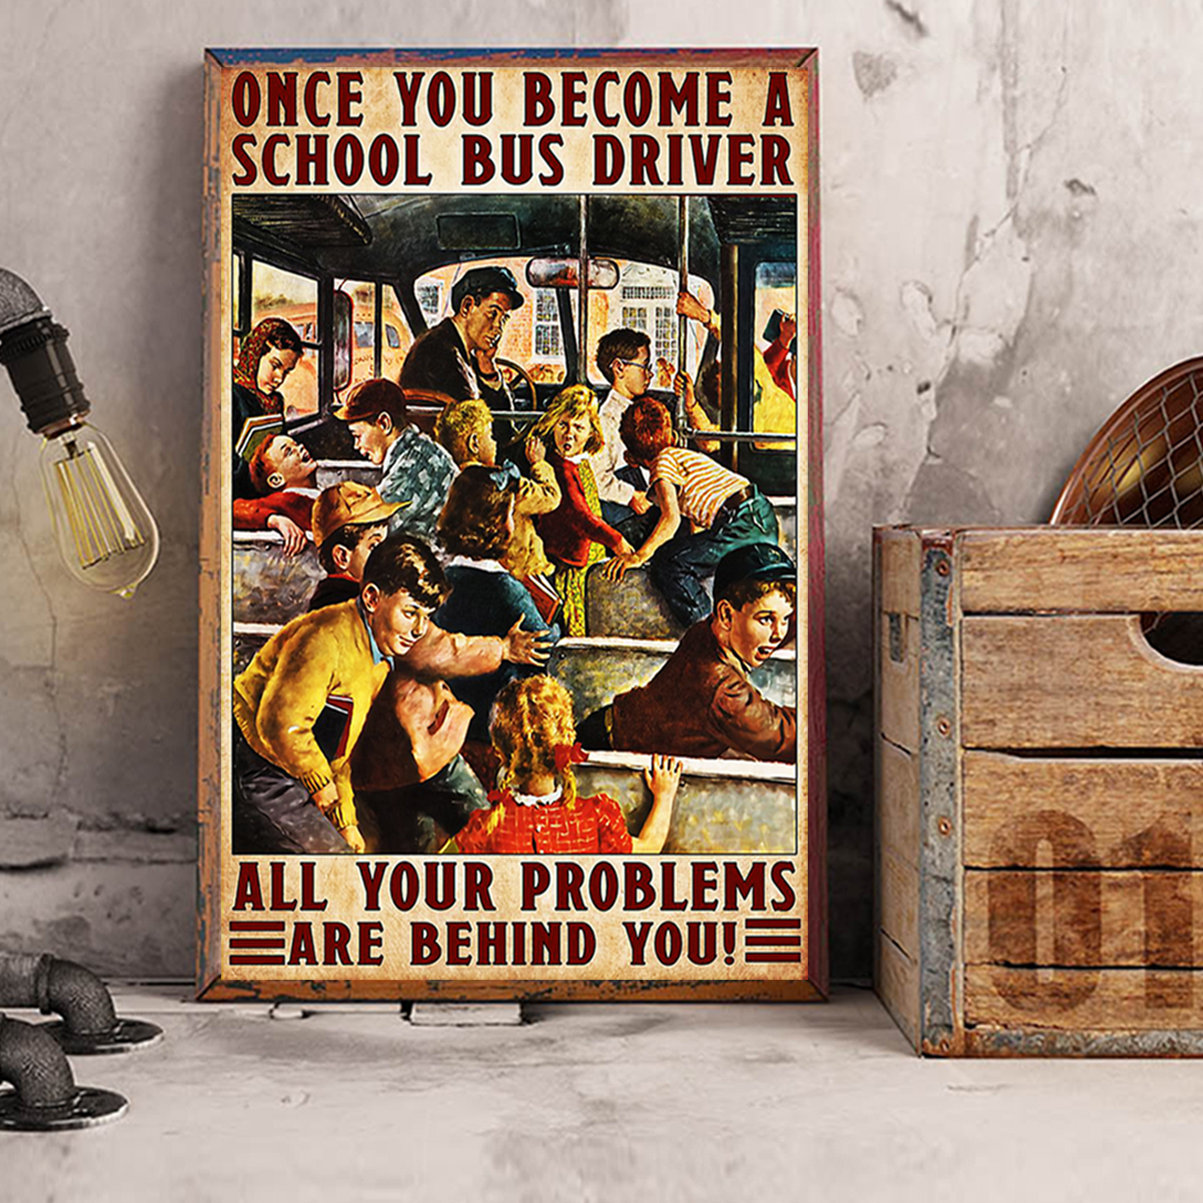 Once you become a school bus driver all your problems are behind you poster A2